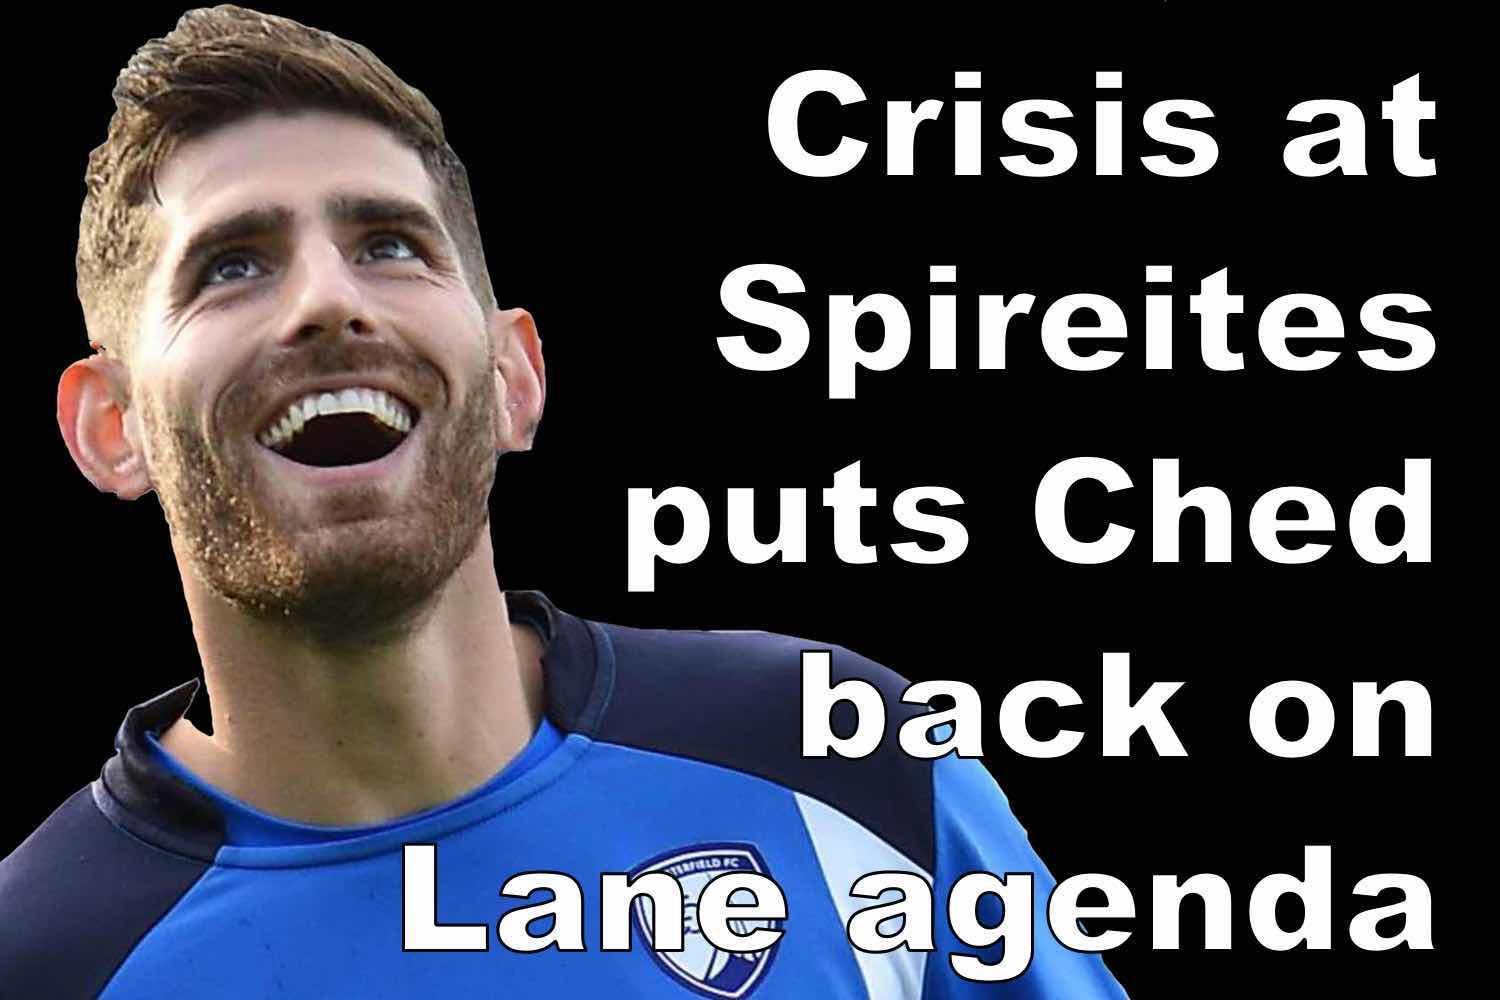 Ched Evans is renewed target for Sheffield United as Spirites are hit by financial crisis